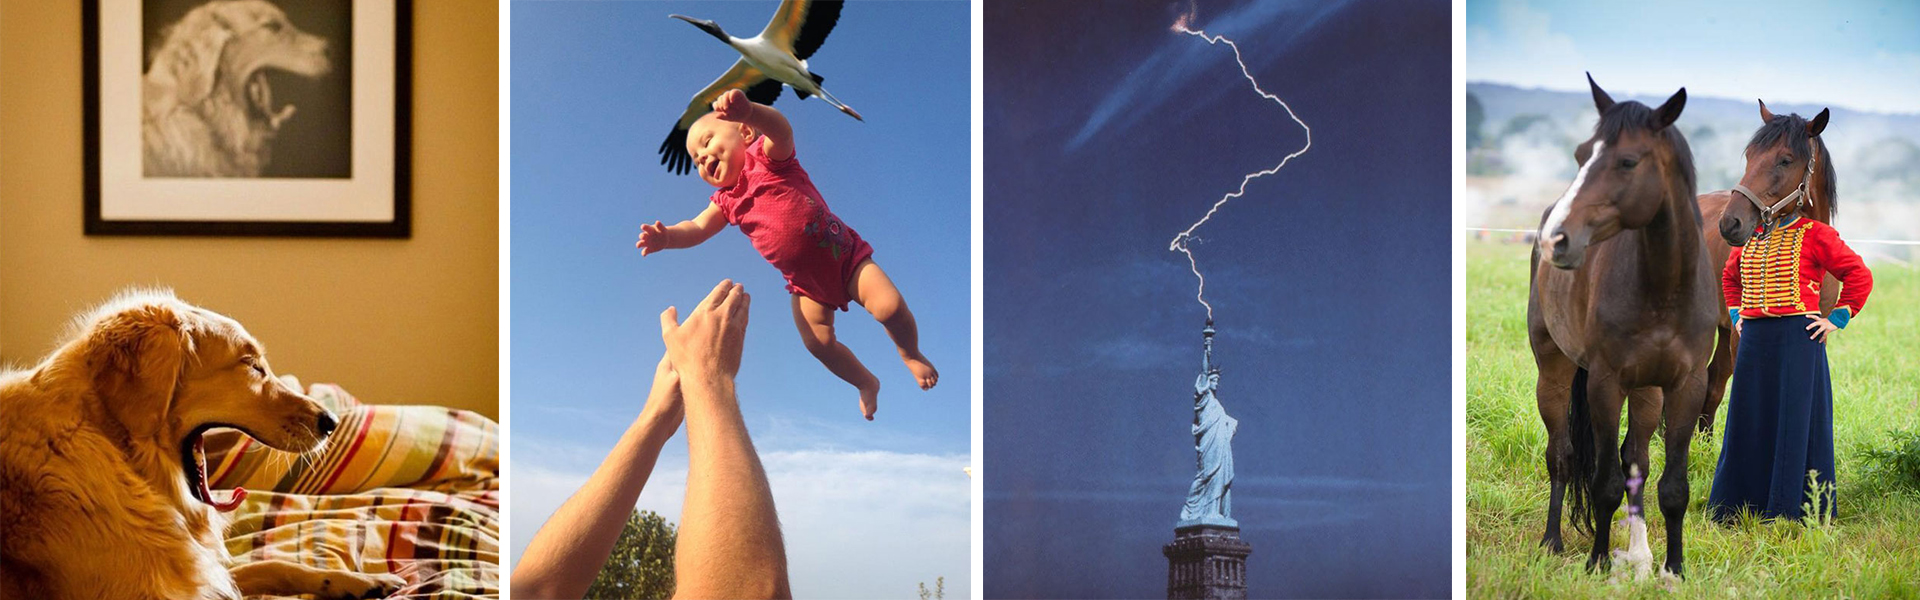 25 fotos tomadas en el momento perfecto-NATION